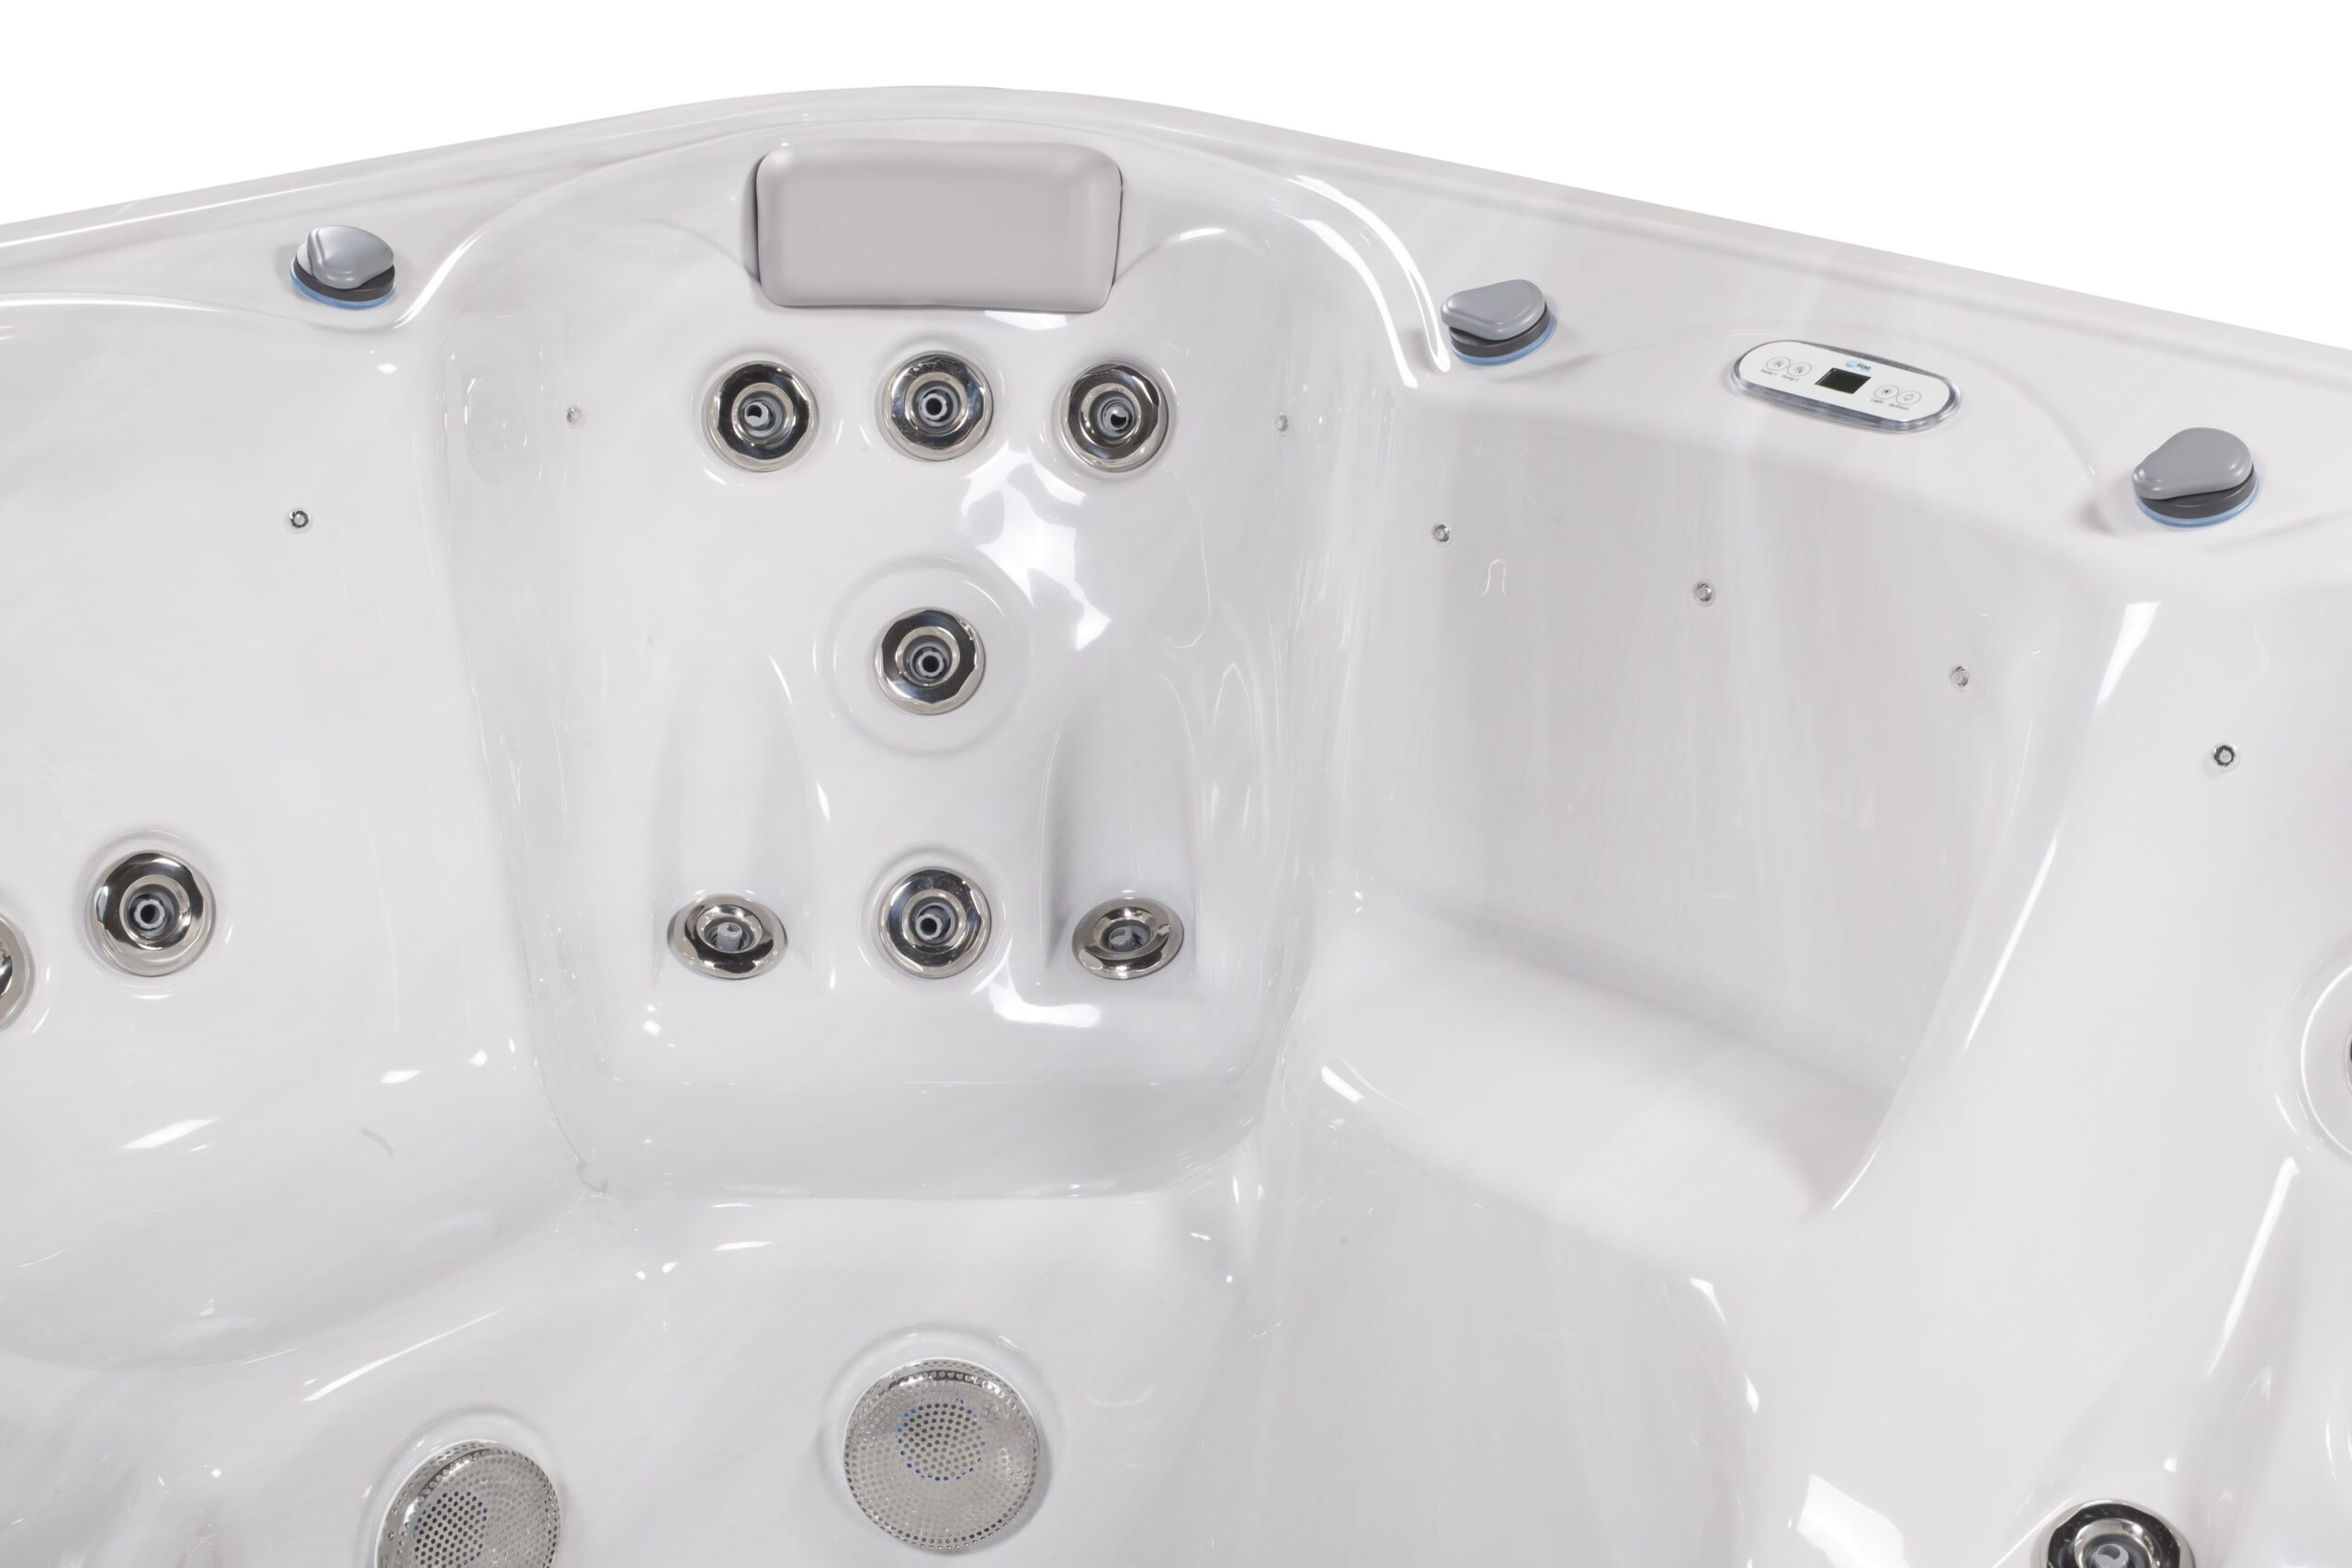 Hydrotherapy hot tub jets for arthritis